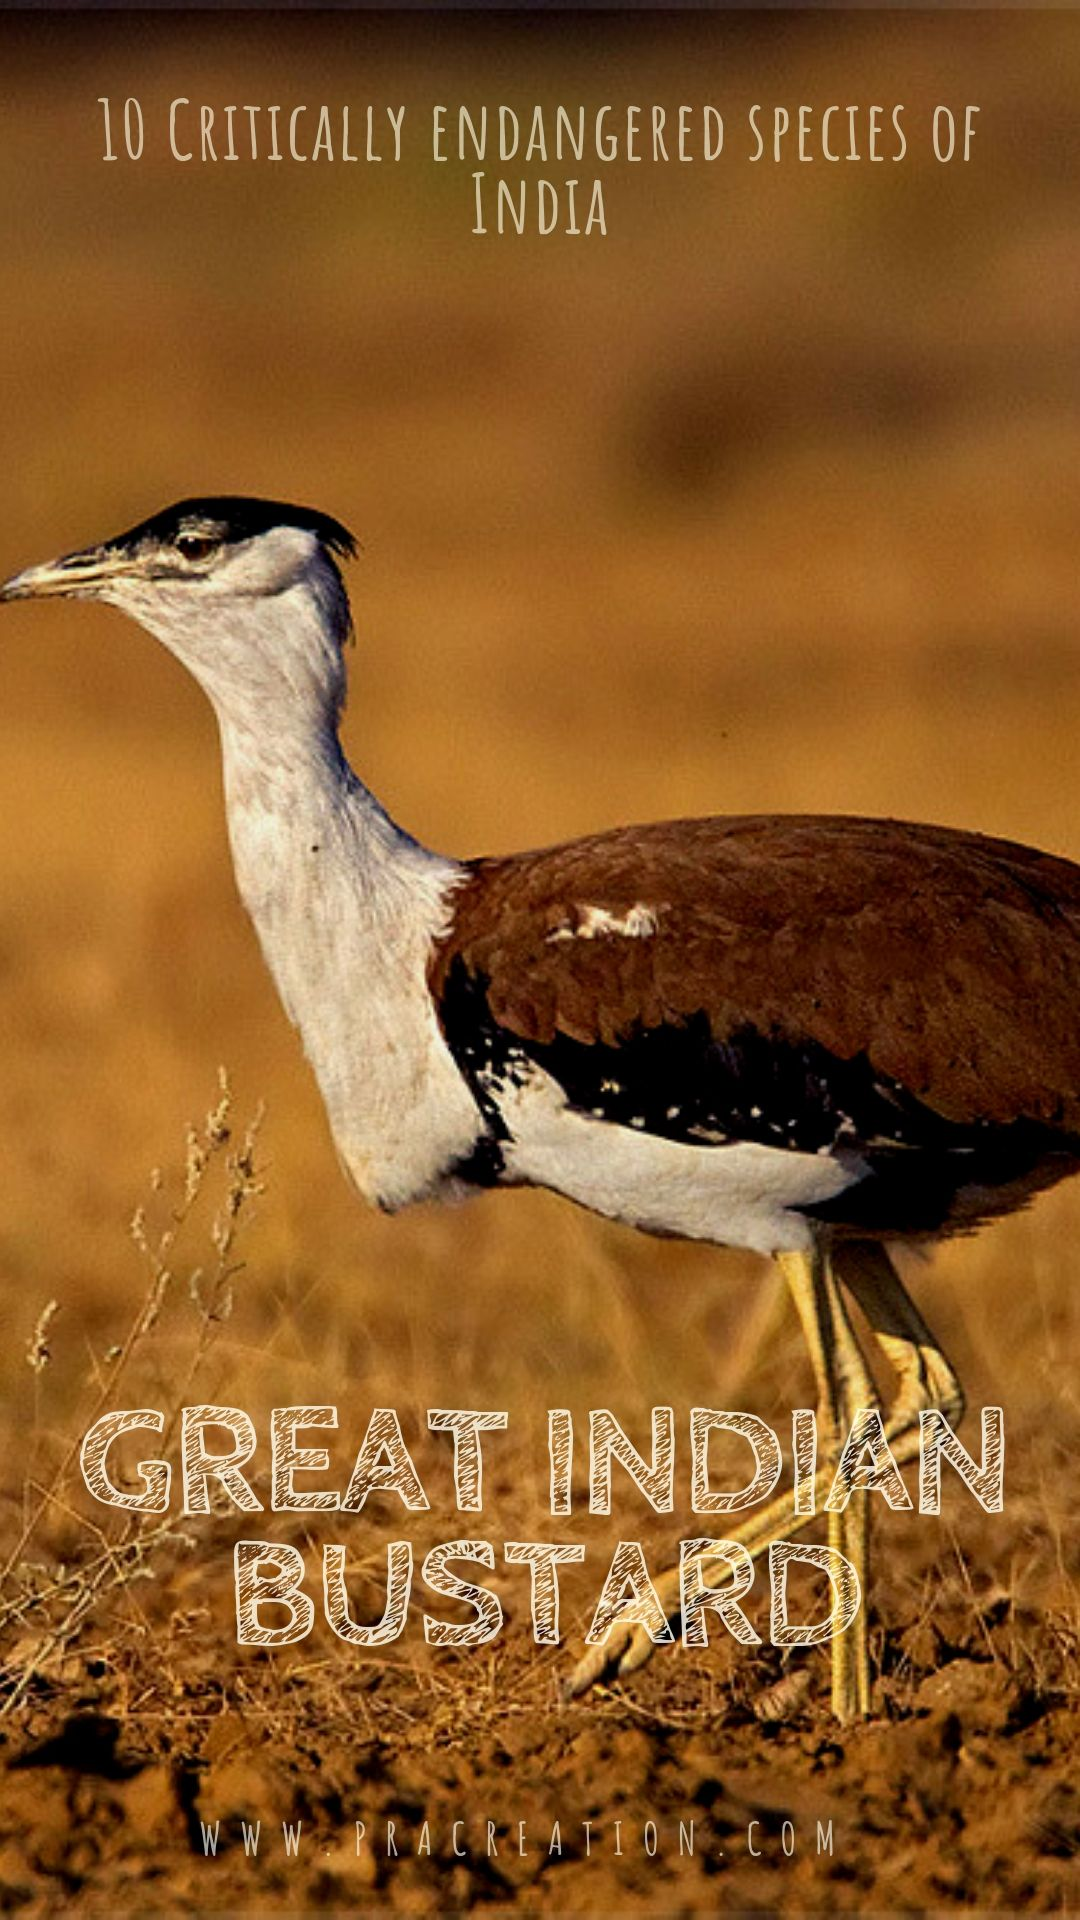 10 Critically Endangered Species of India (With images